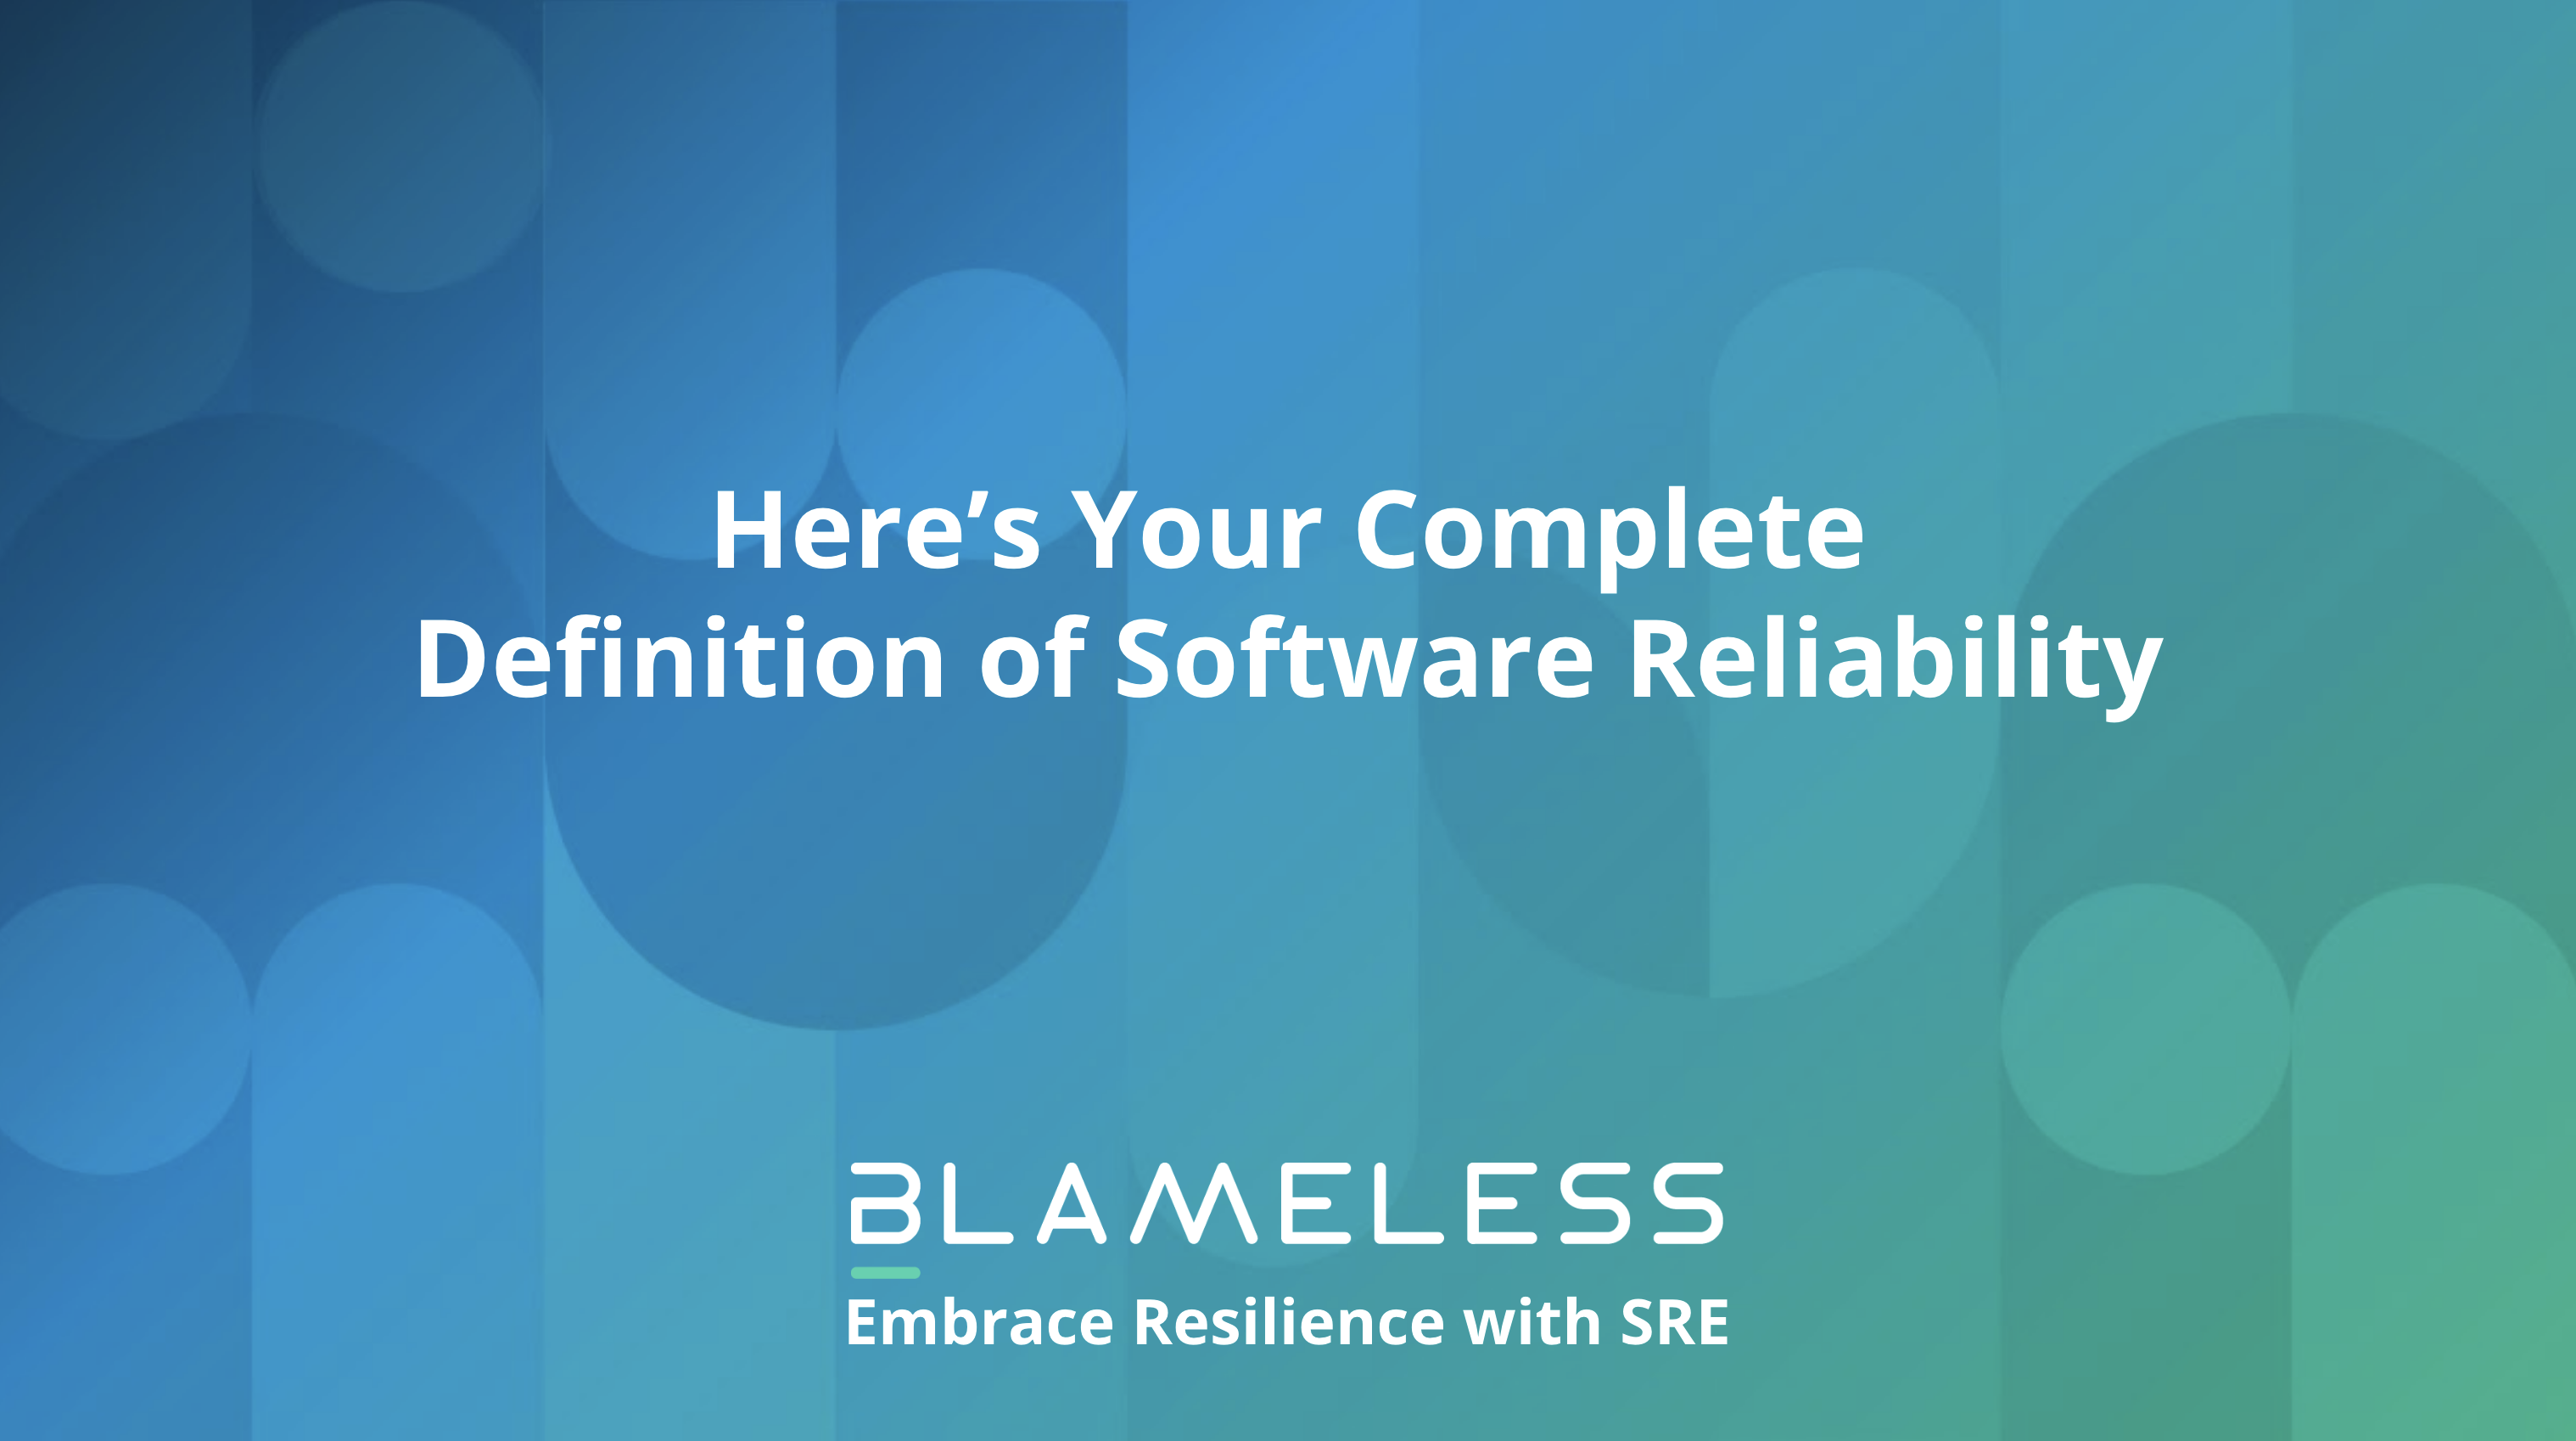 Here's your Complete Definition of Software Reliability